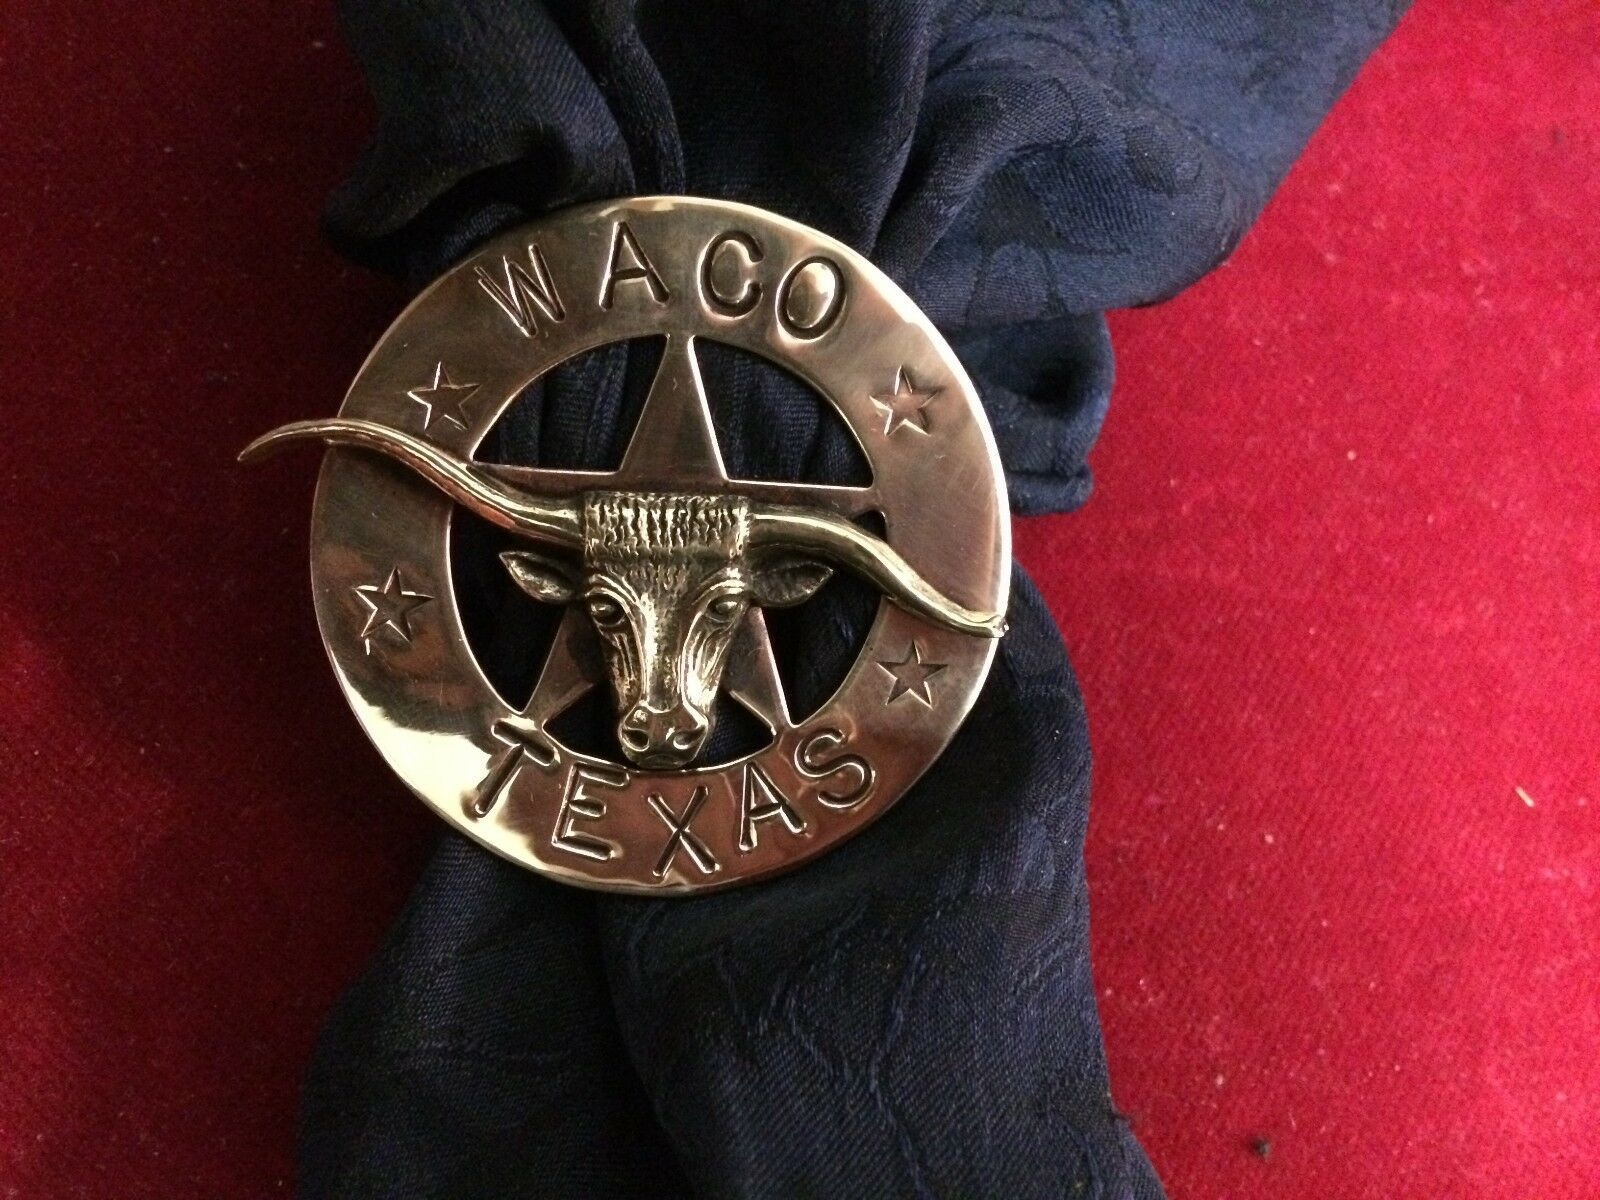 Scarf Slide Wild Rag Slide  Brass Circle Star w  Bronze Steer, Waco, Texas